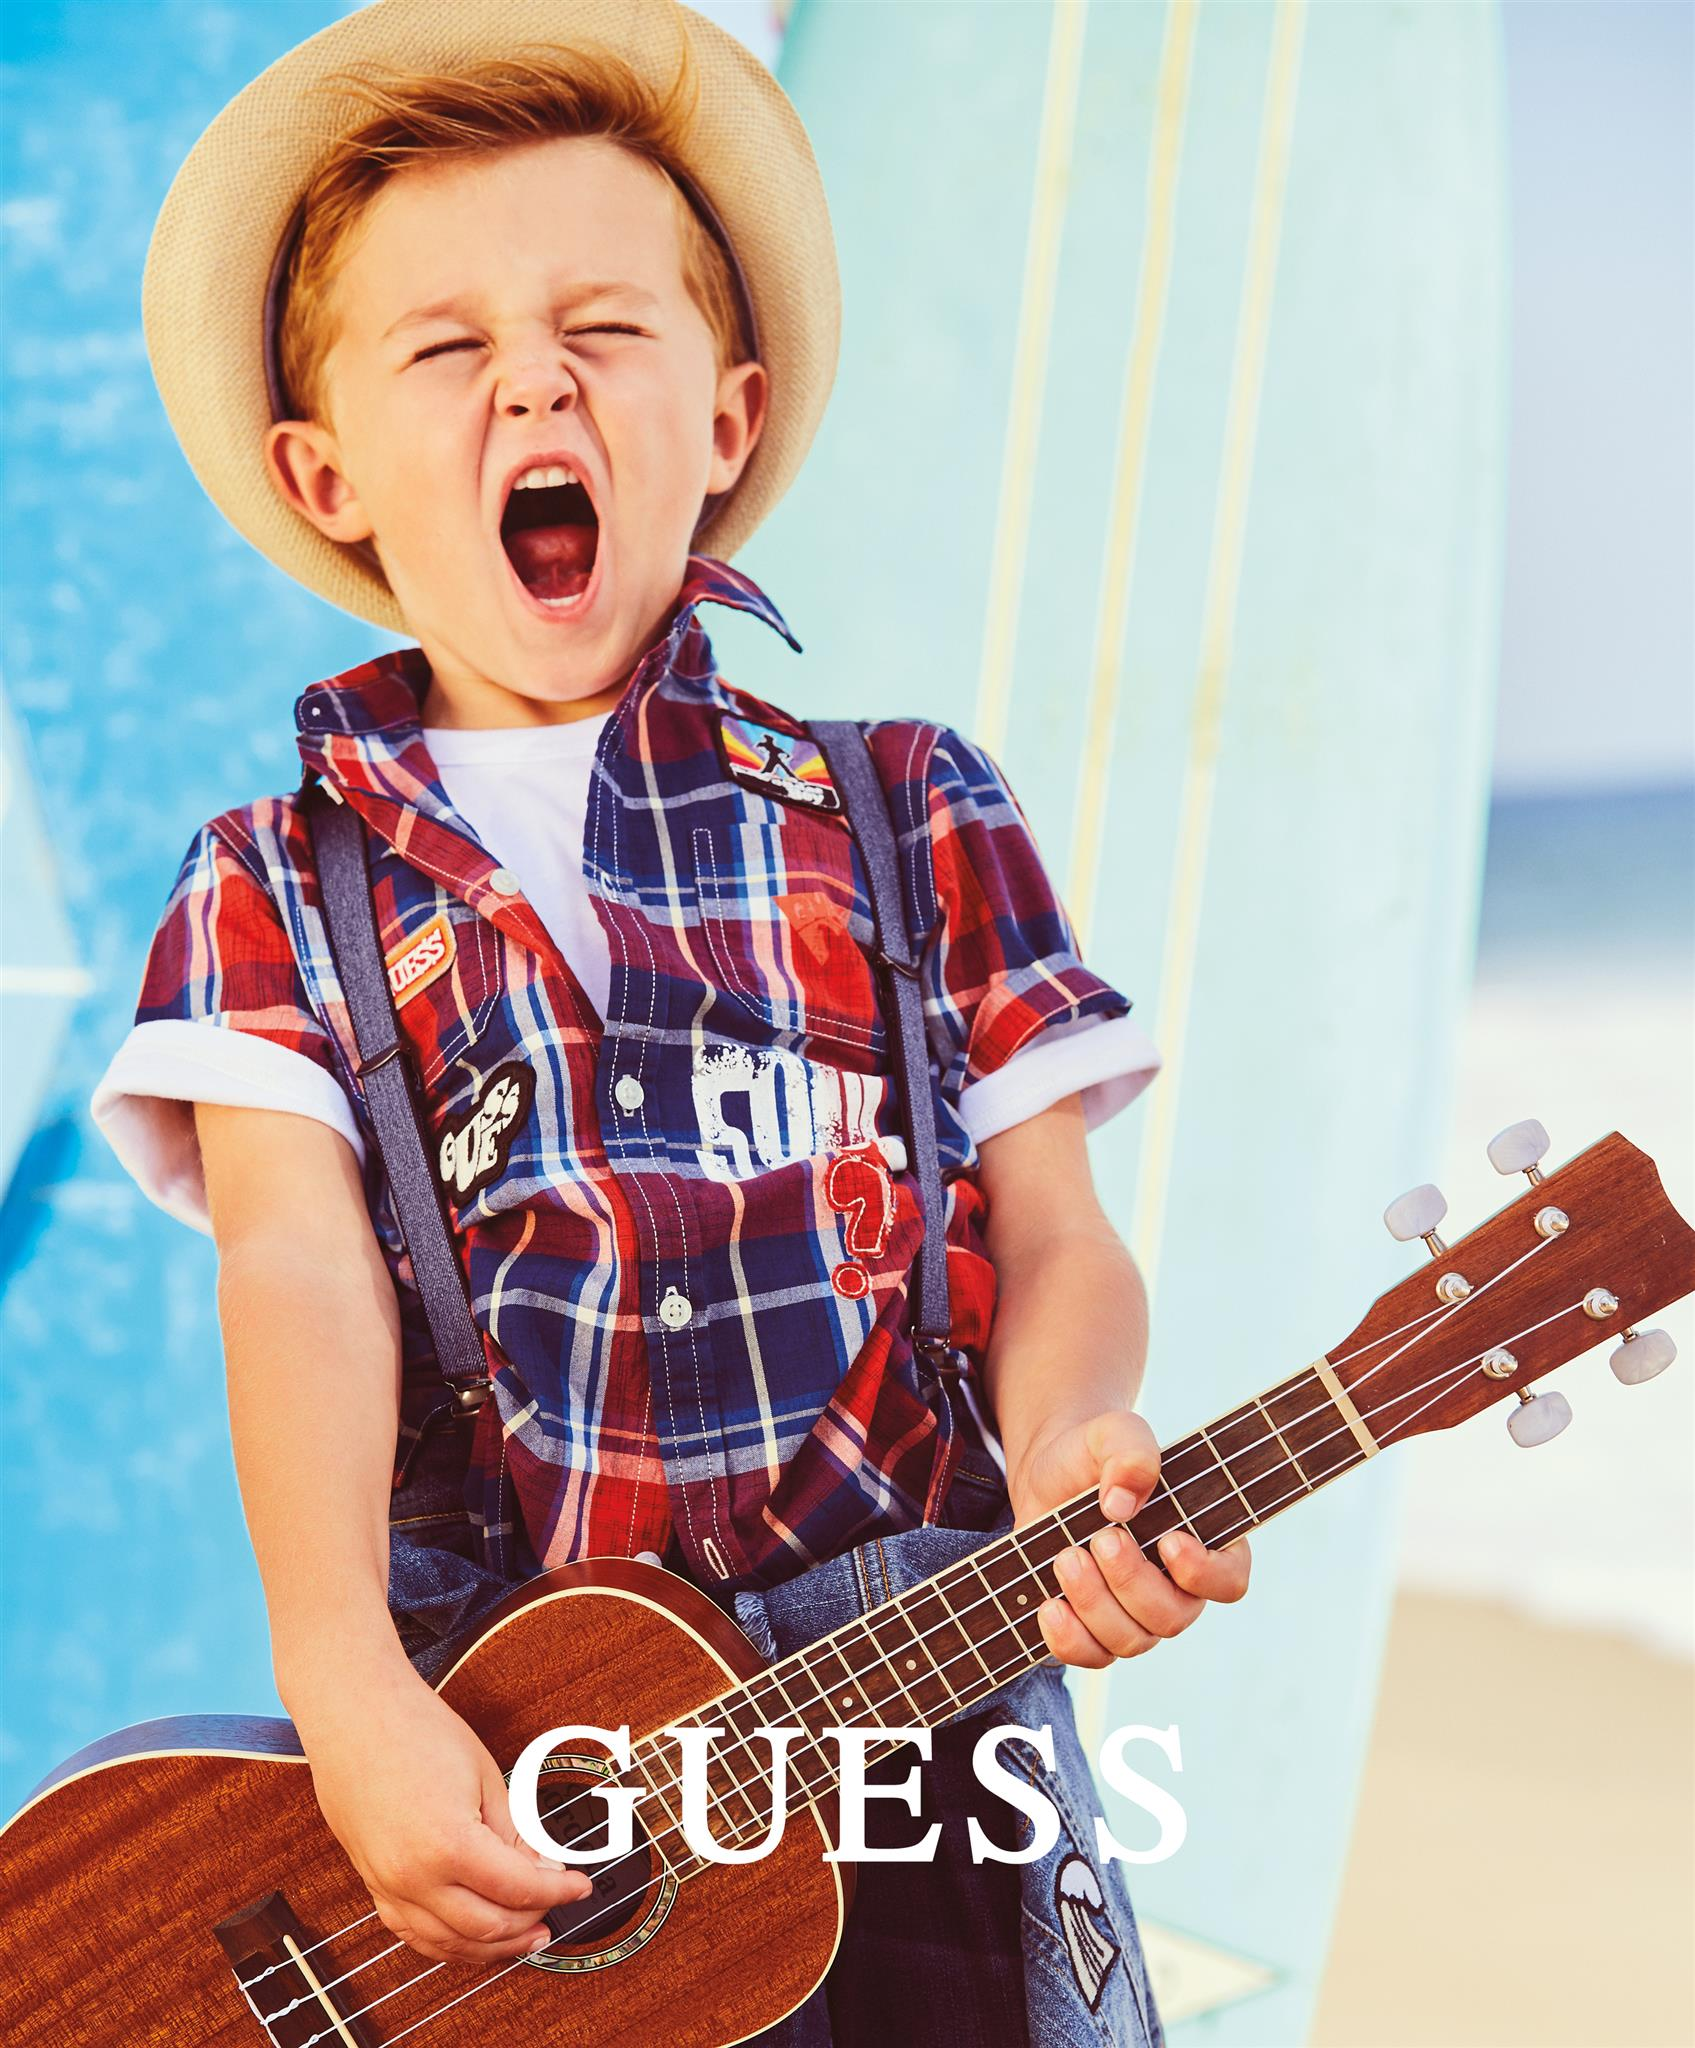 599_GUESS_Kids_Sp18_V18